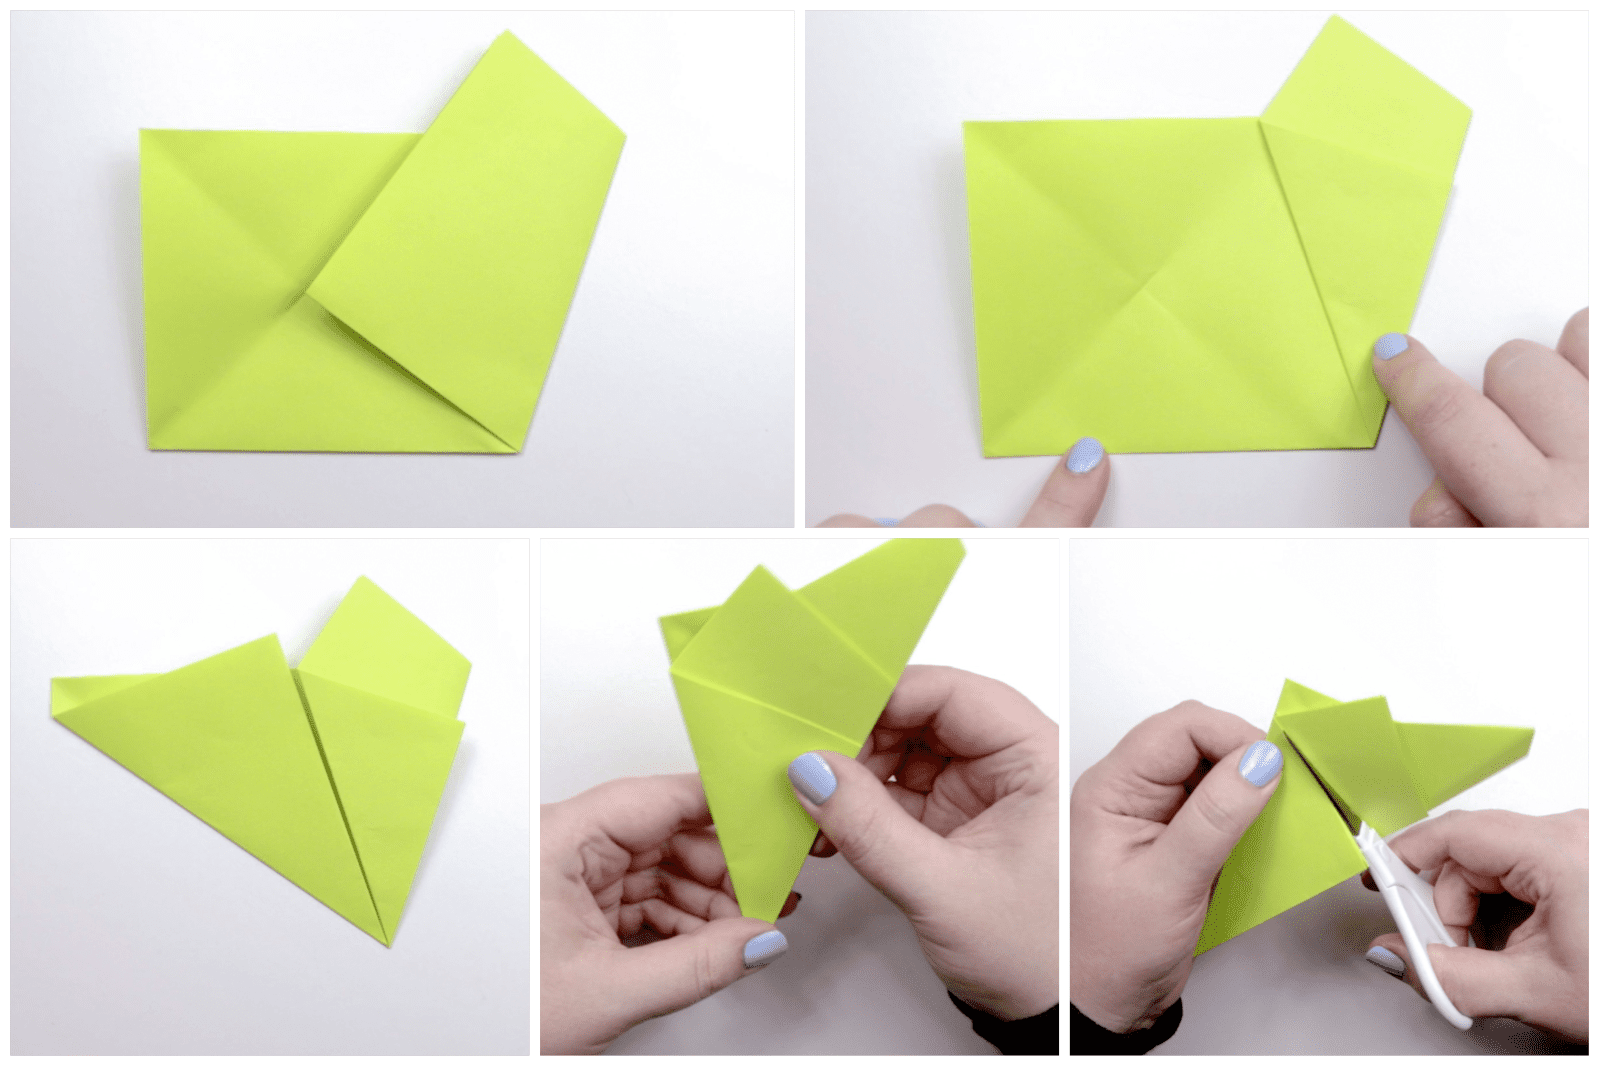 Folding the yellow paper and using scissors to cut a flap.